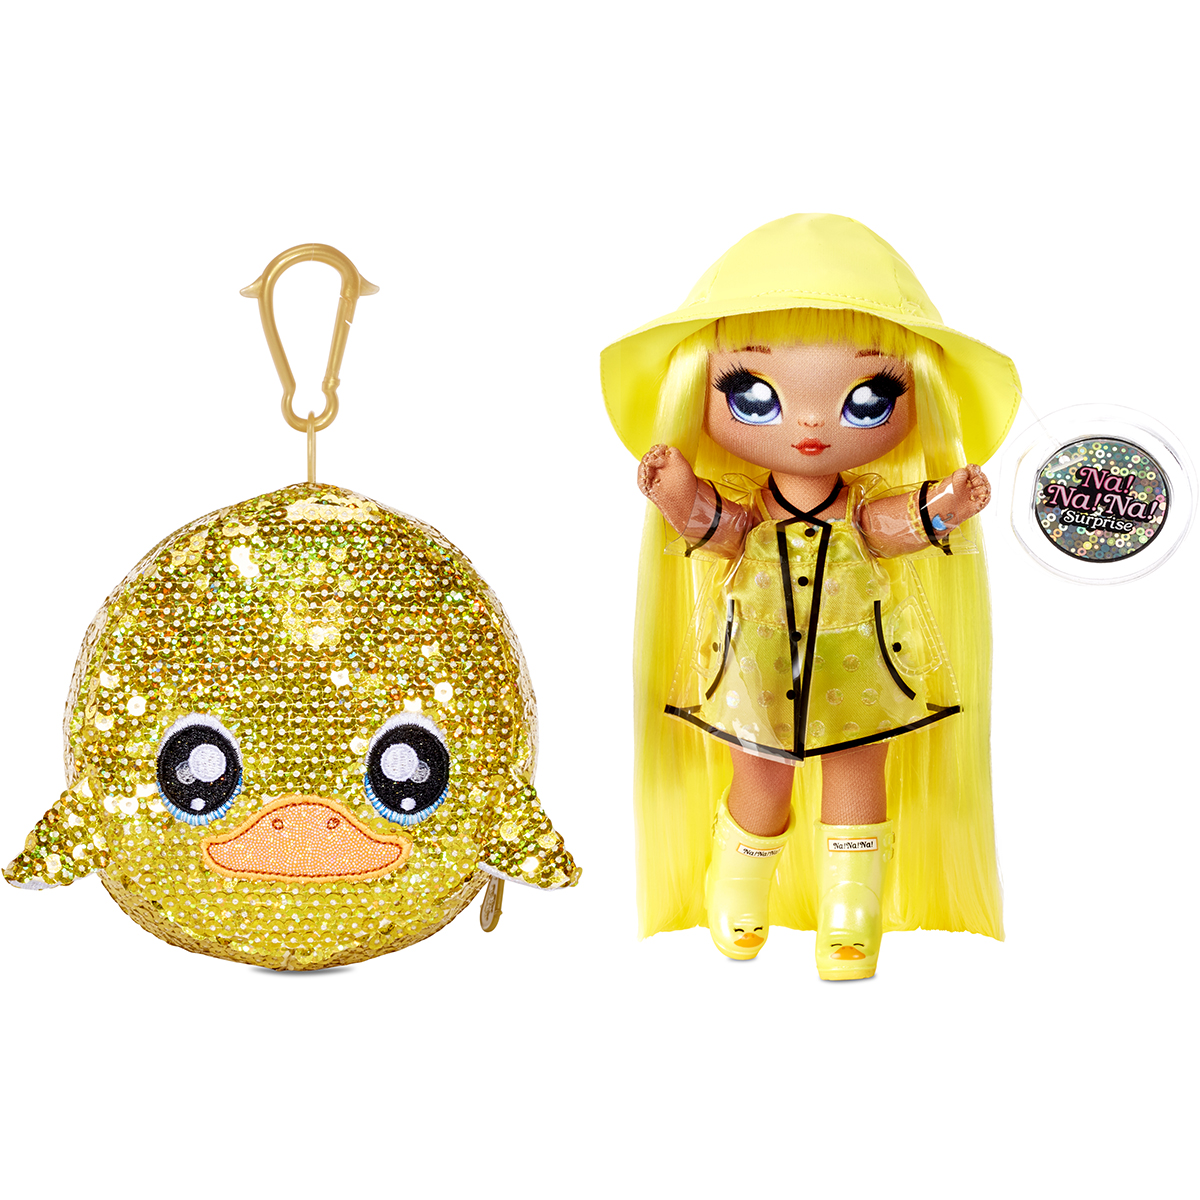 Na Na Na Surprise 2 in 1, Sparkle S1 - Papusa si accesoriu fashion, Daria Duckie, 573777